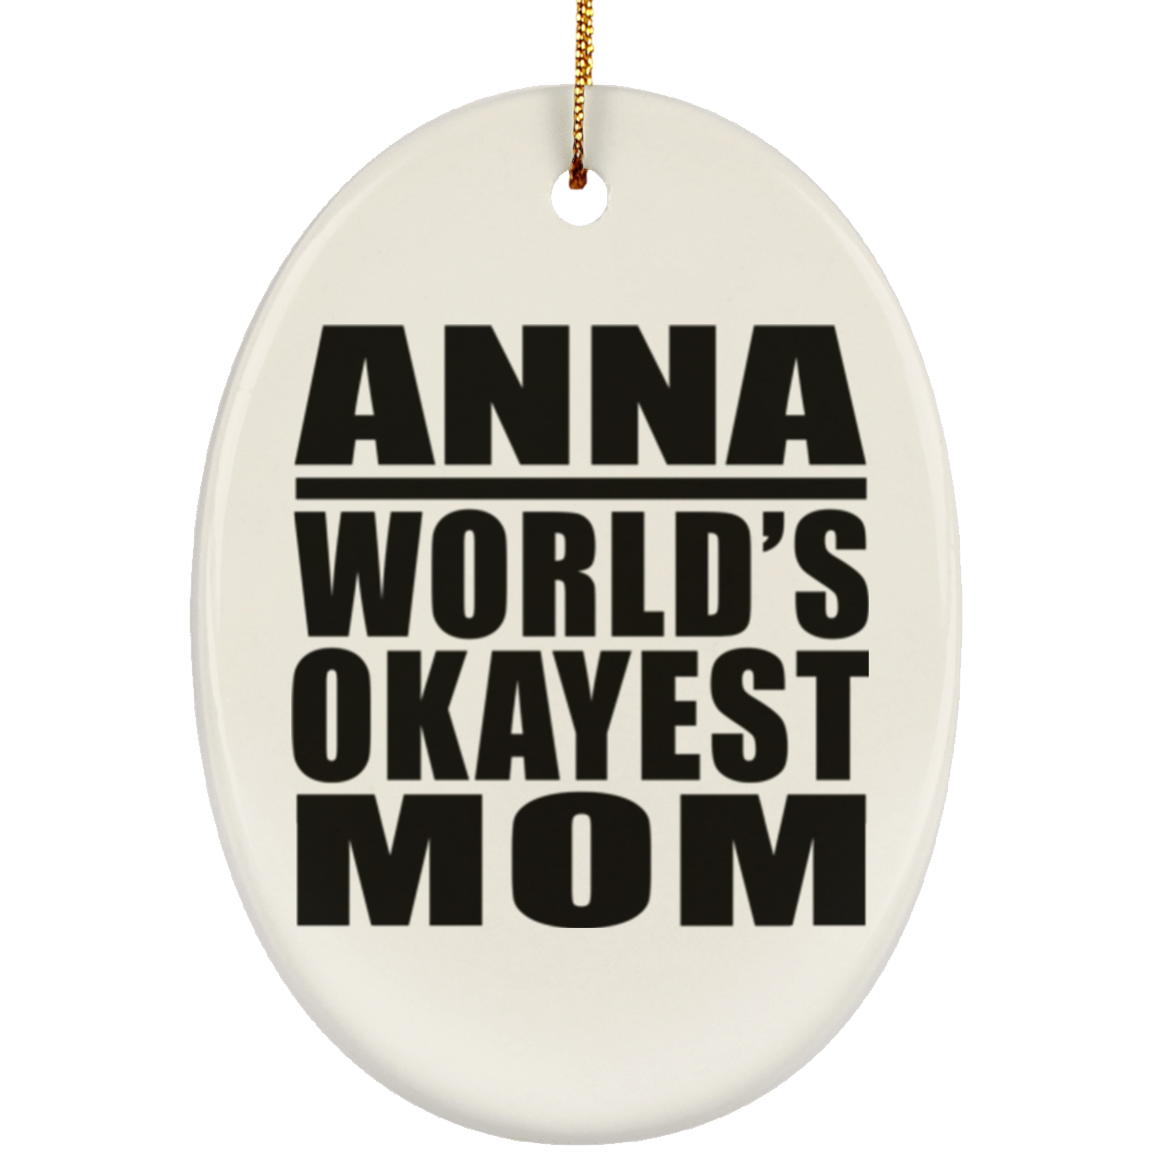 Anna World's Okayest Mom - Oval Ornament